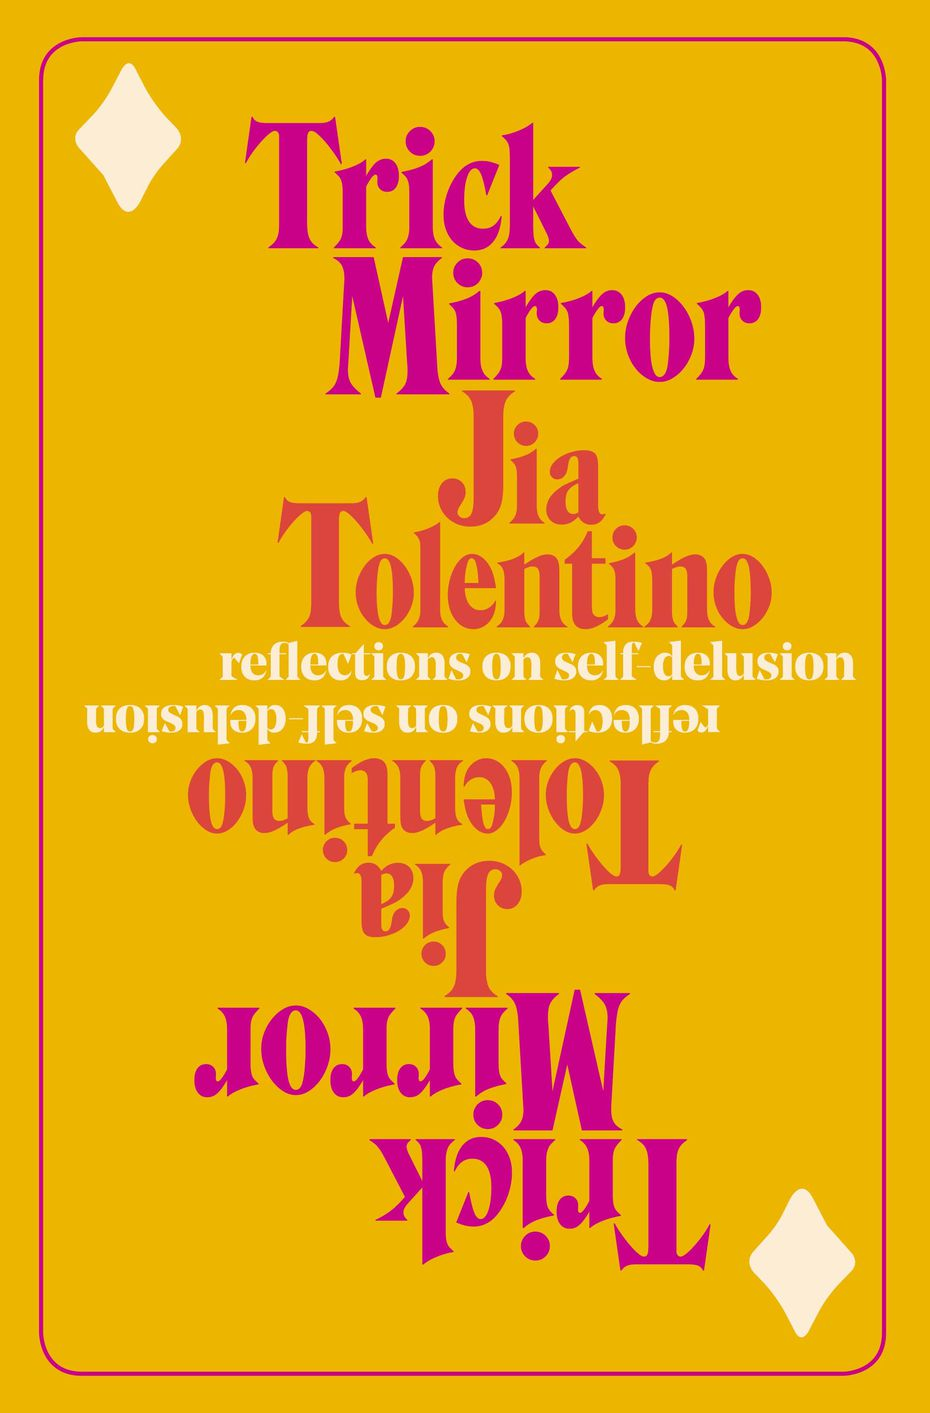 """Trick Mirror: Reflections on Self-Delusion"" is an essay collection exploring the myriad modern-day forces deranging us, our ideas and our cultural values."